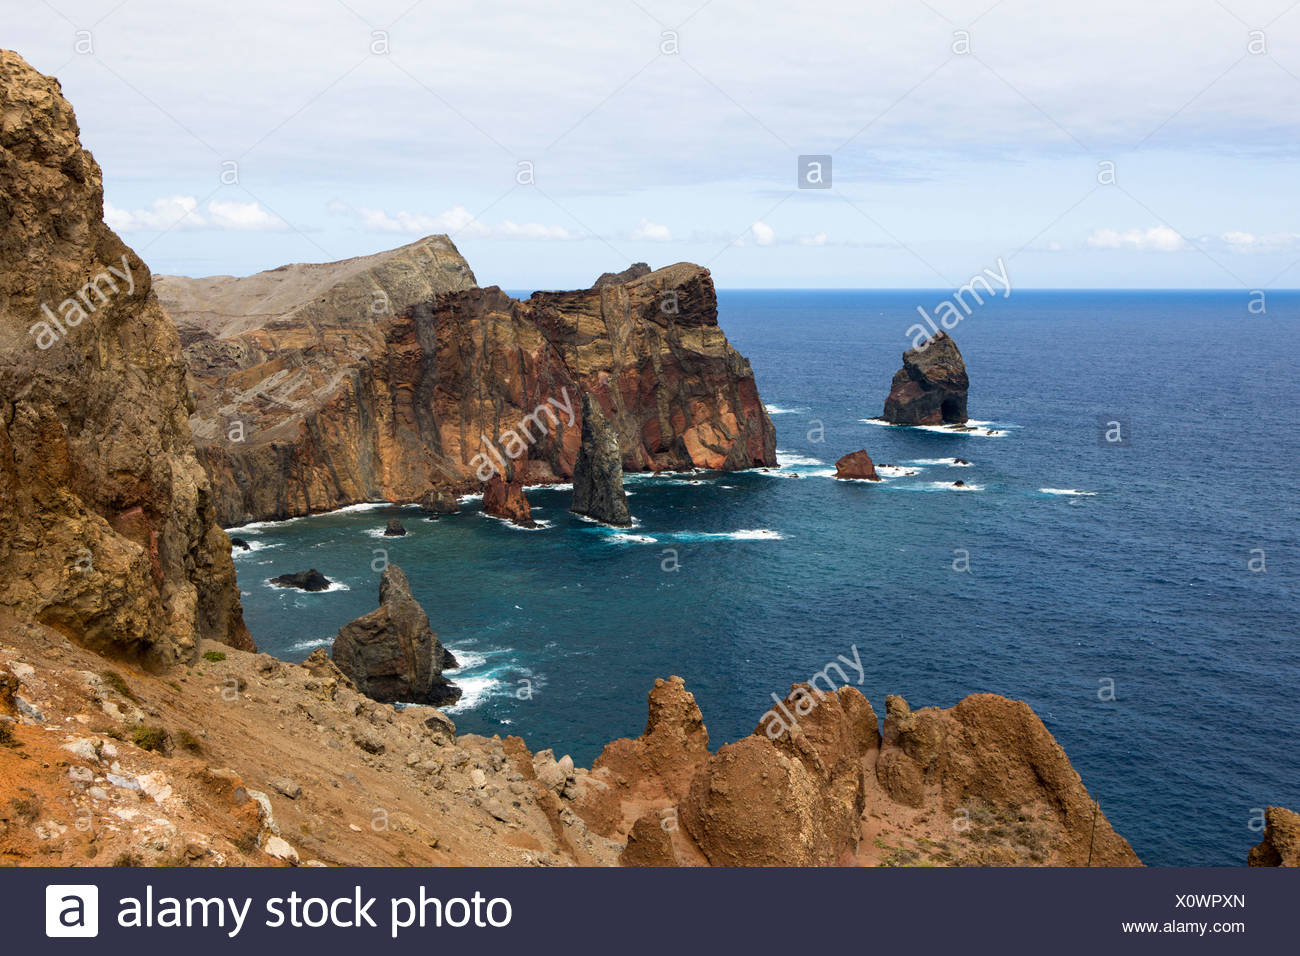 Nature reserve with steep cliffs on the volcanic peninsula of Ponta de Sao Lourenco, Funchal, Caniçal, Ilha da Madeira - Stock Image